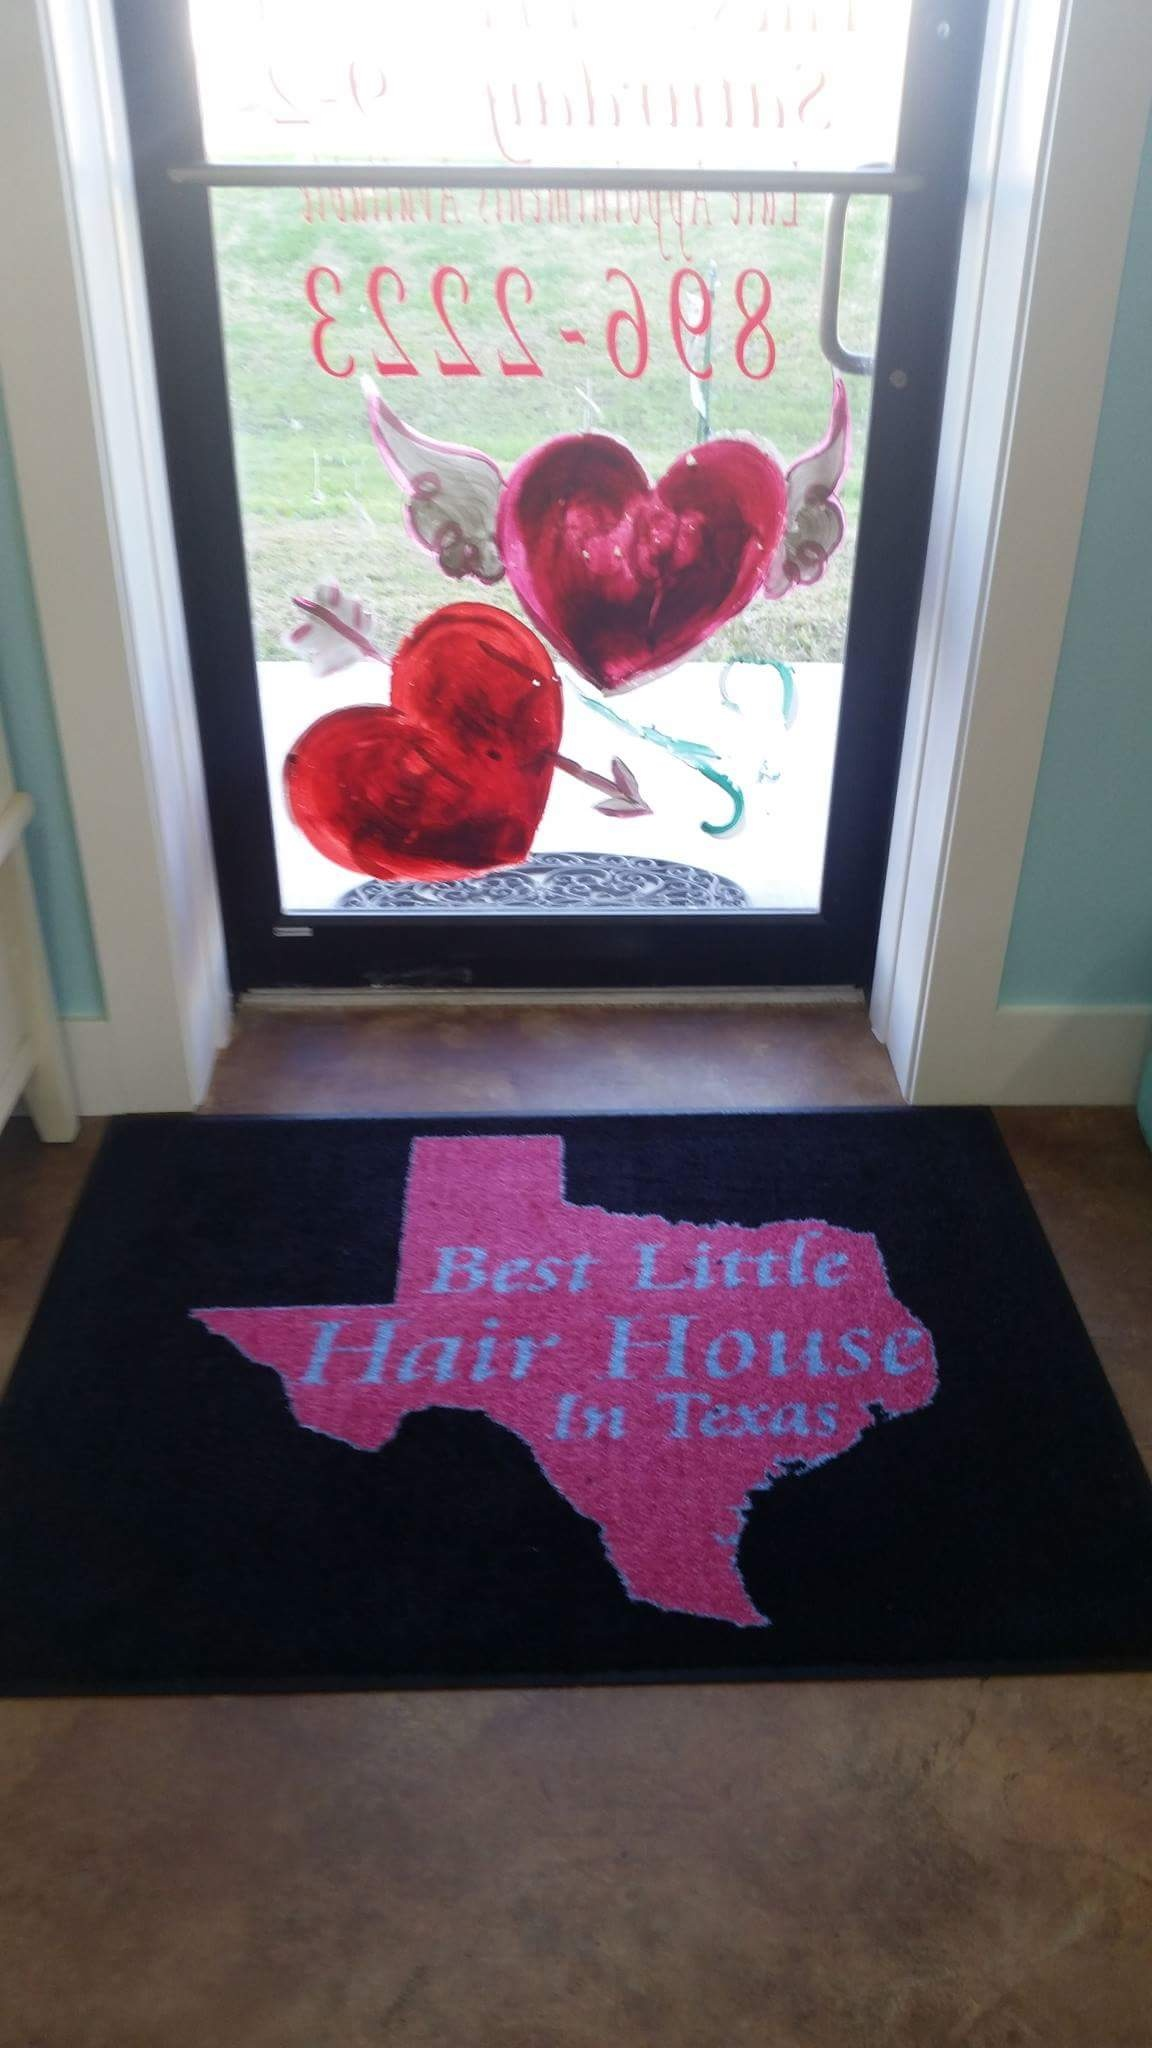 The Best Little Hair House In Texas image 2